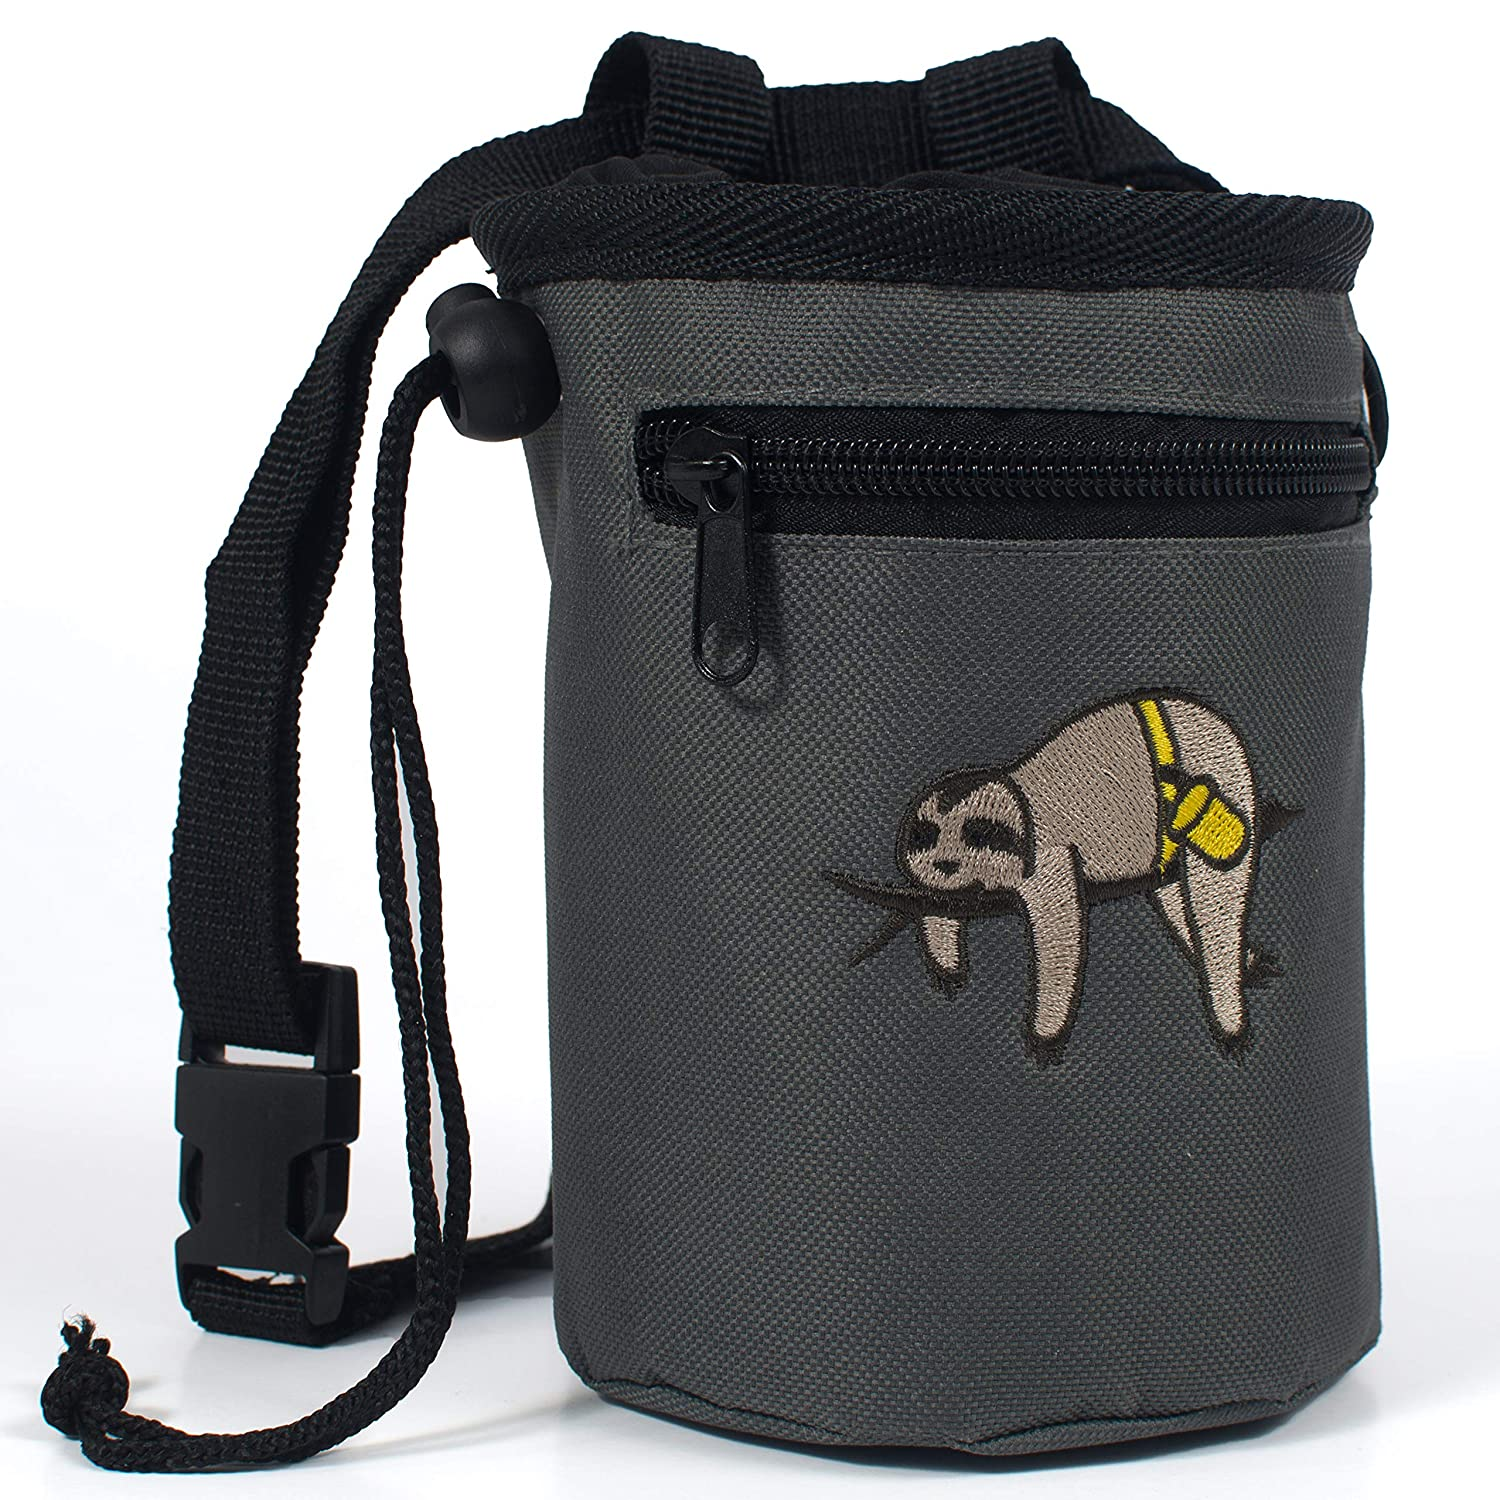 Adjustable Quick-Clip Belt and Embroidered Sloth Design Zippered Pocket Craggys Chalk Bag for Kids and Adults with Drawstring Closure